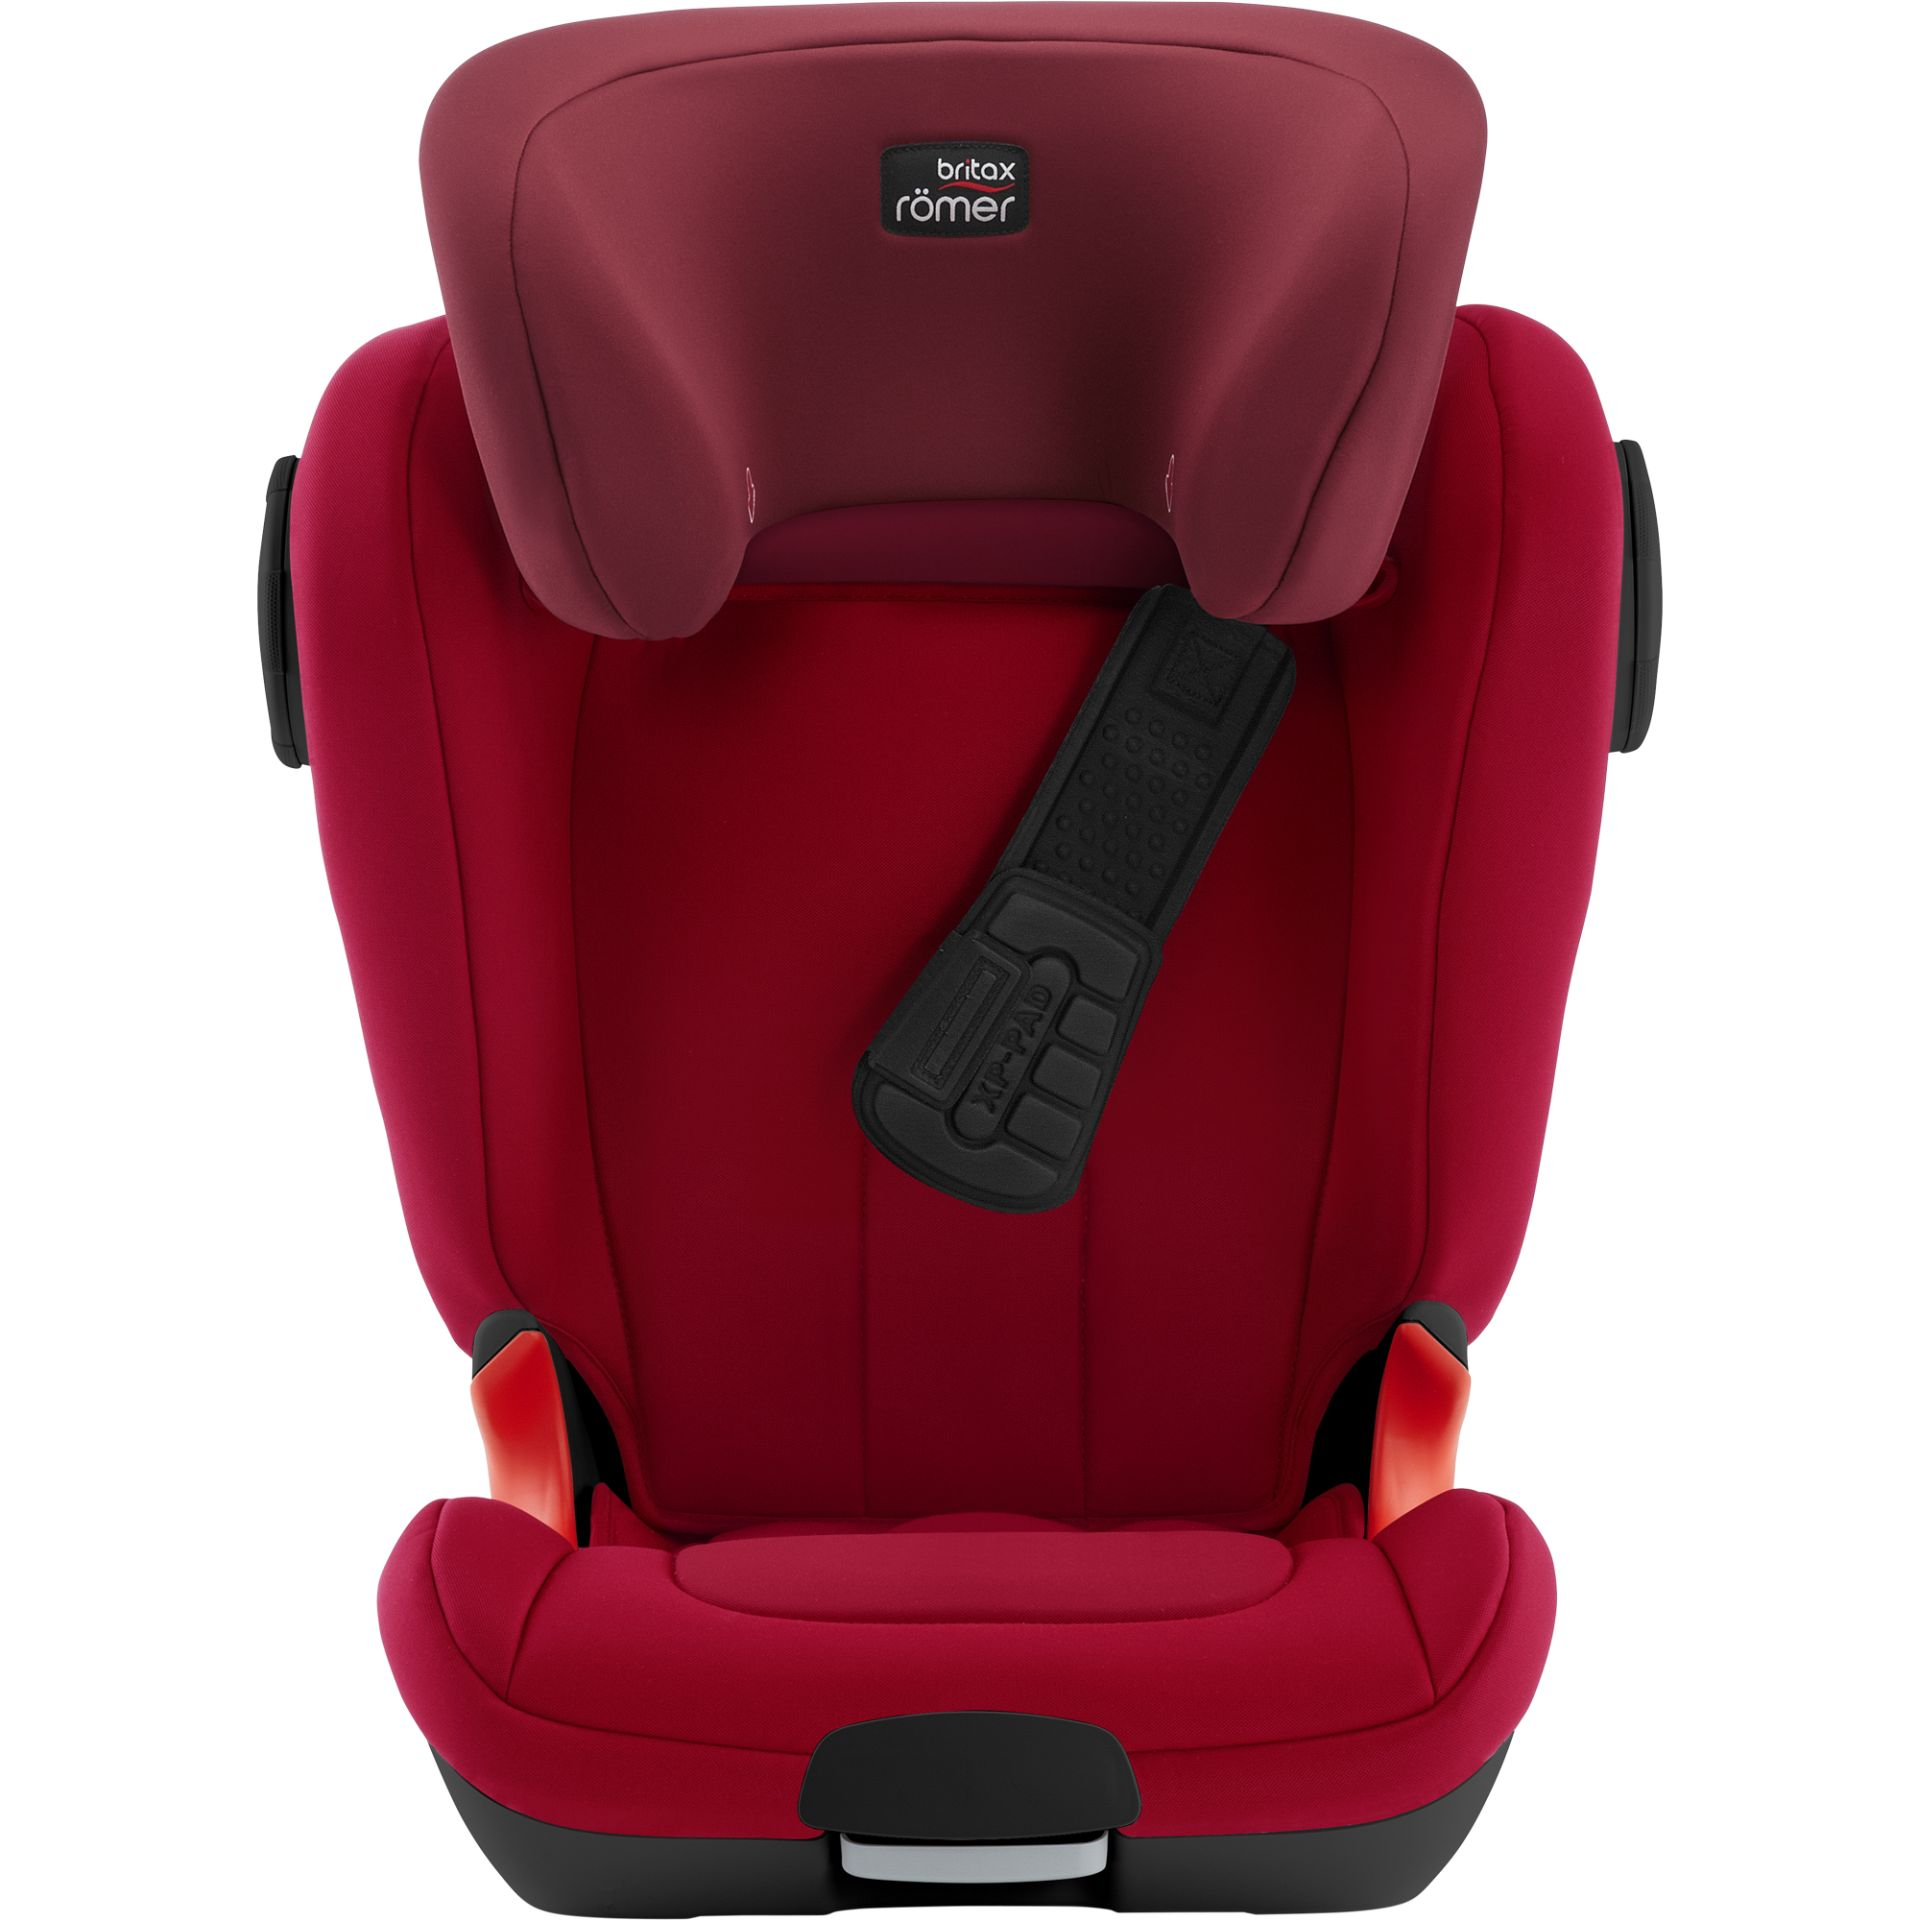 britax r mer child car seat kidfix xp sict black series 2019 flame red buy at kidsroom car. Black Bedroom Furniture Sets. Home Design Ideas